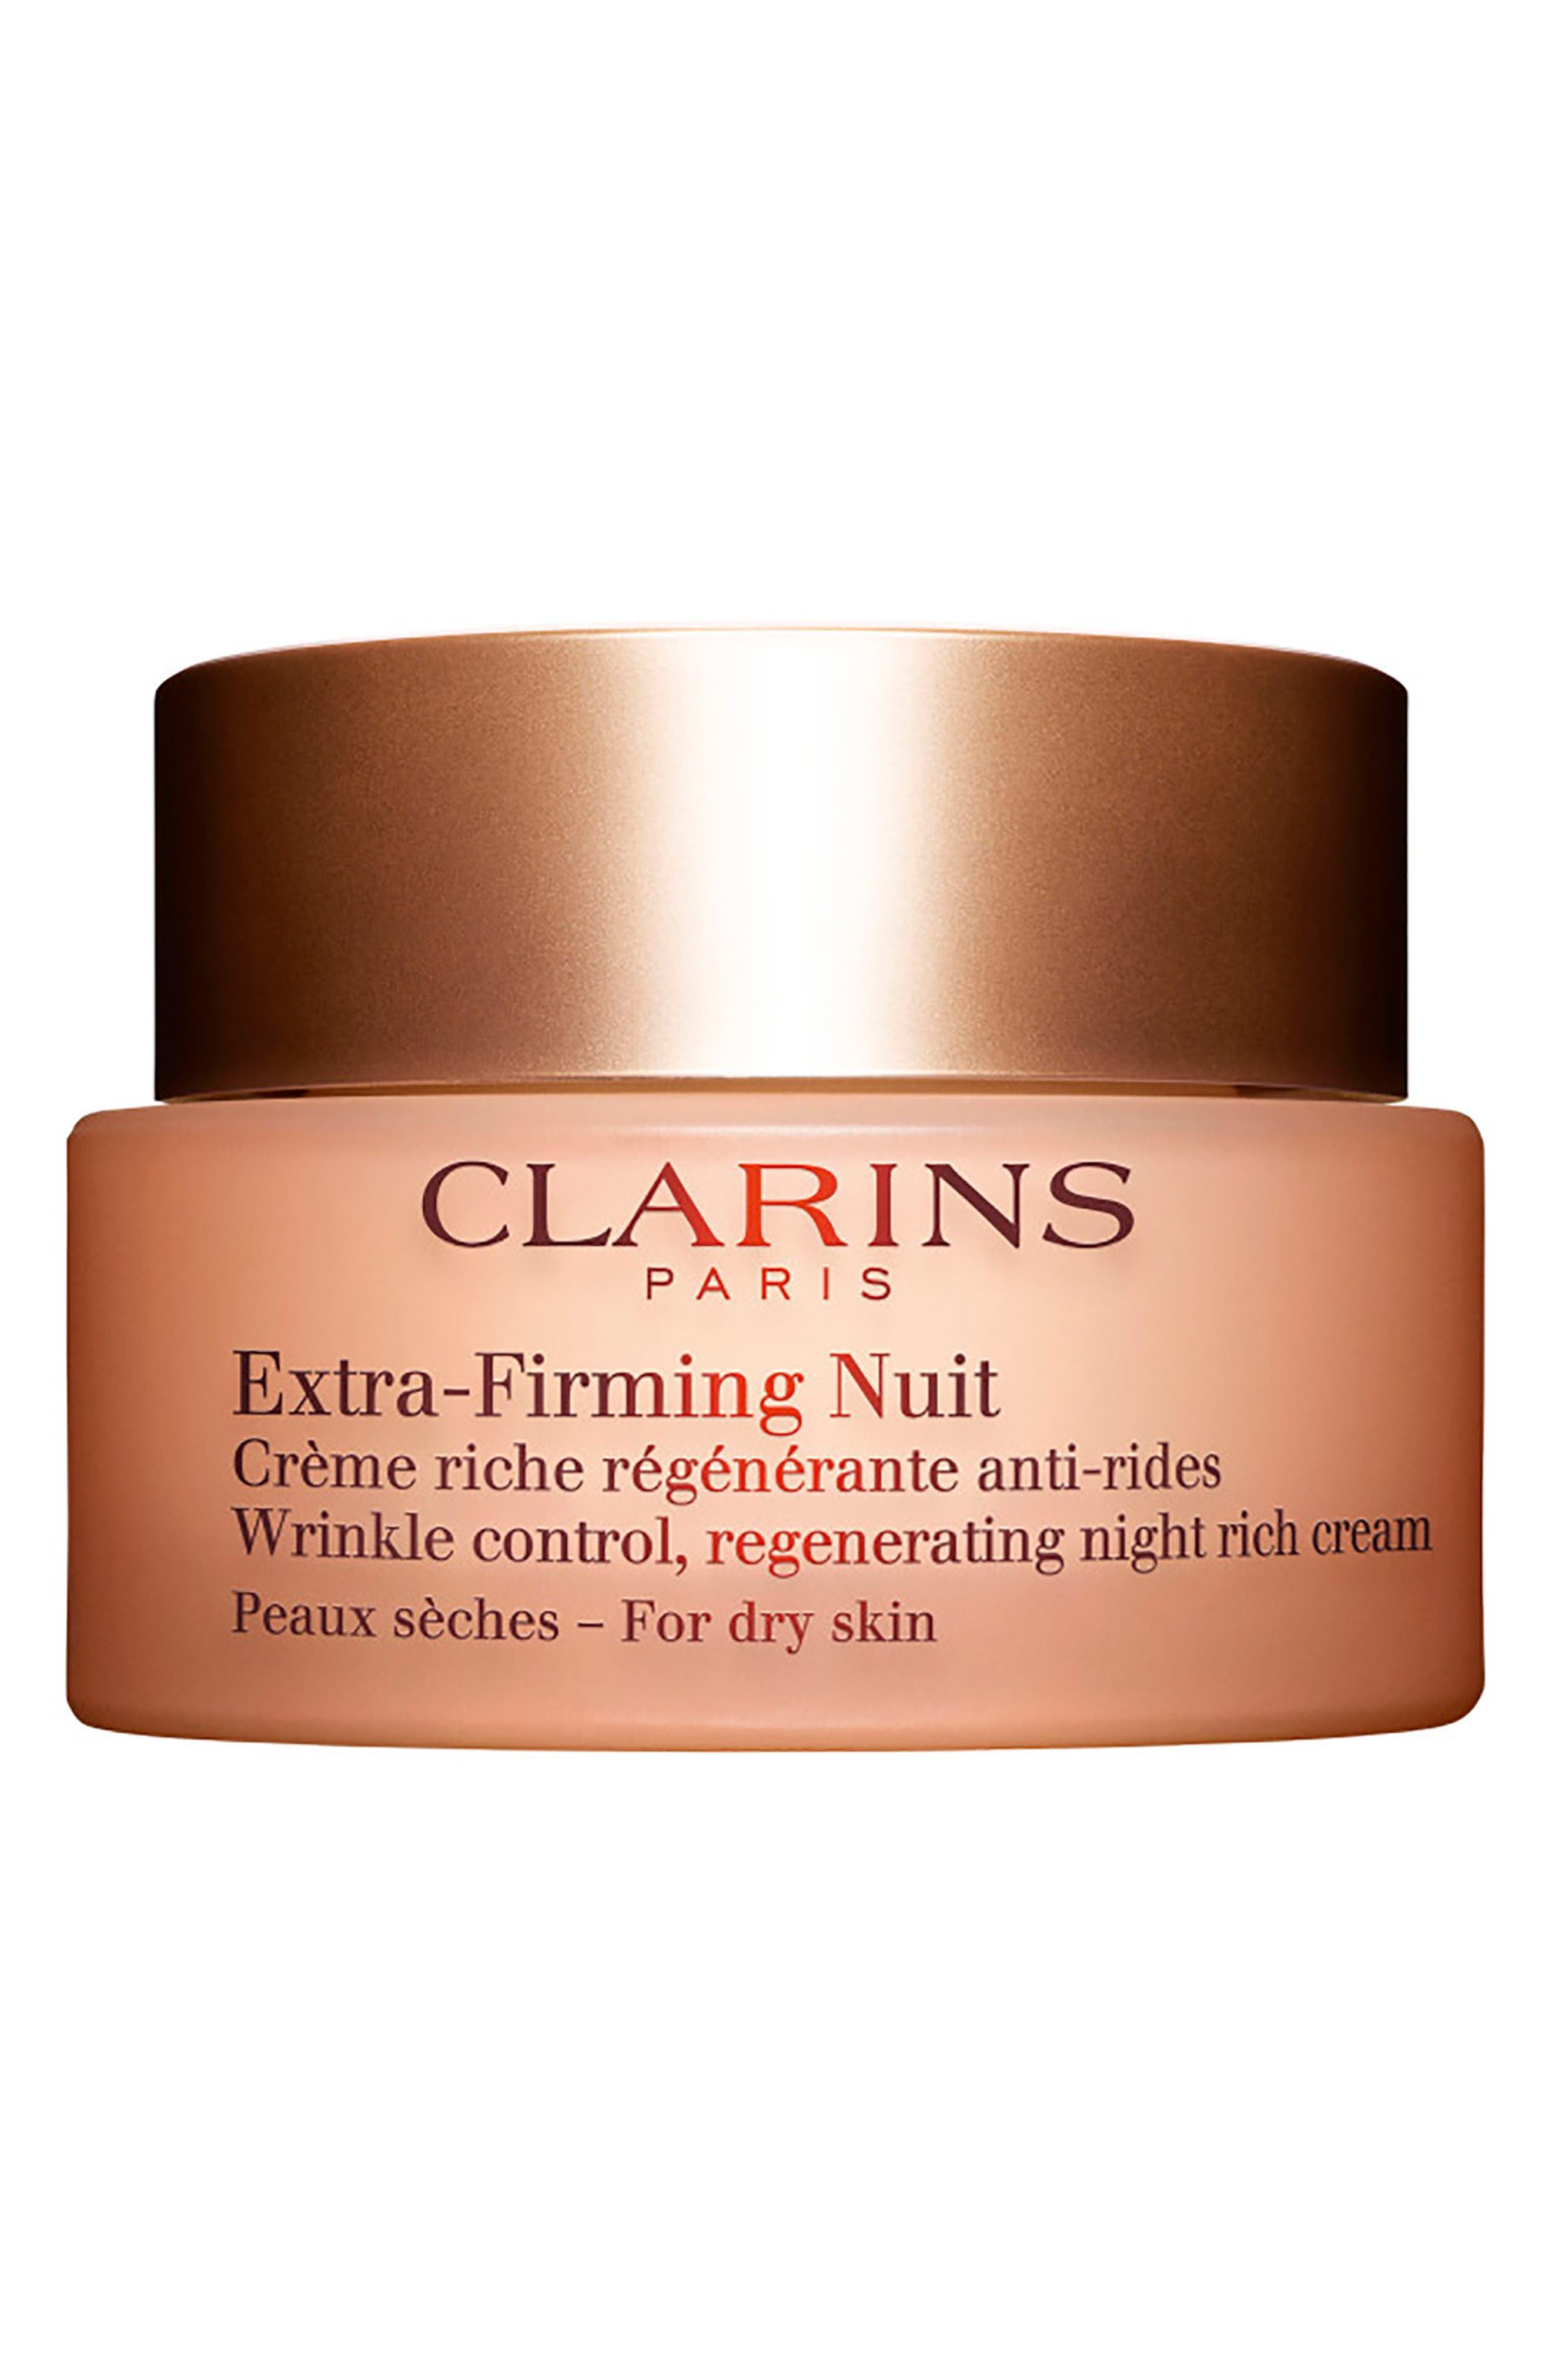 Extra-Firming Wrinkle Control Regenerating Night Cream for Dry skin,                             Main thumbnail 1, color,                             No Color